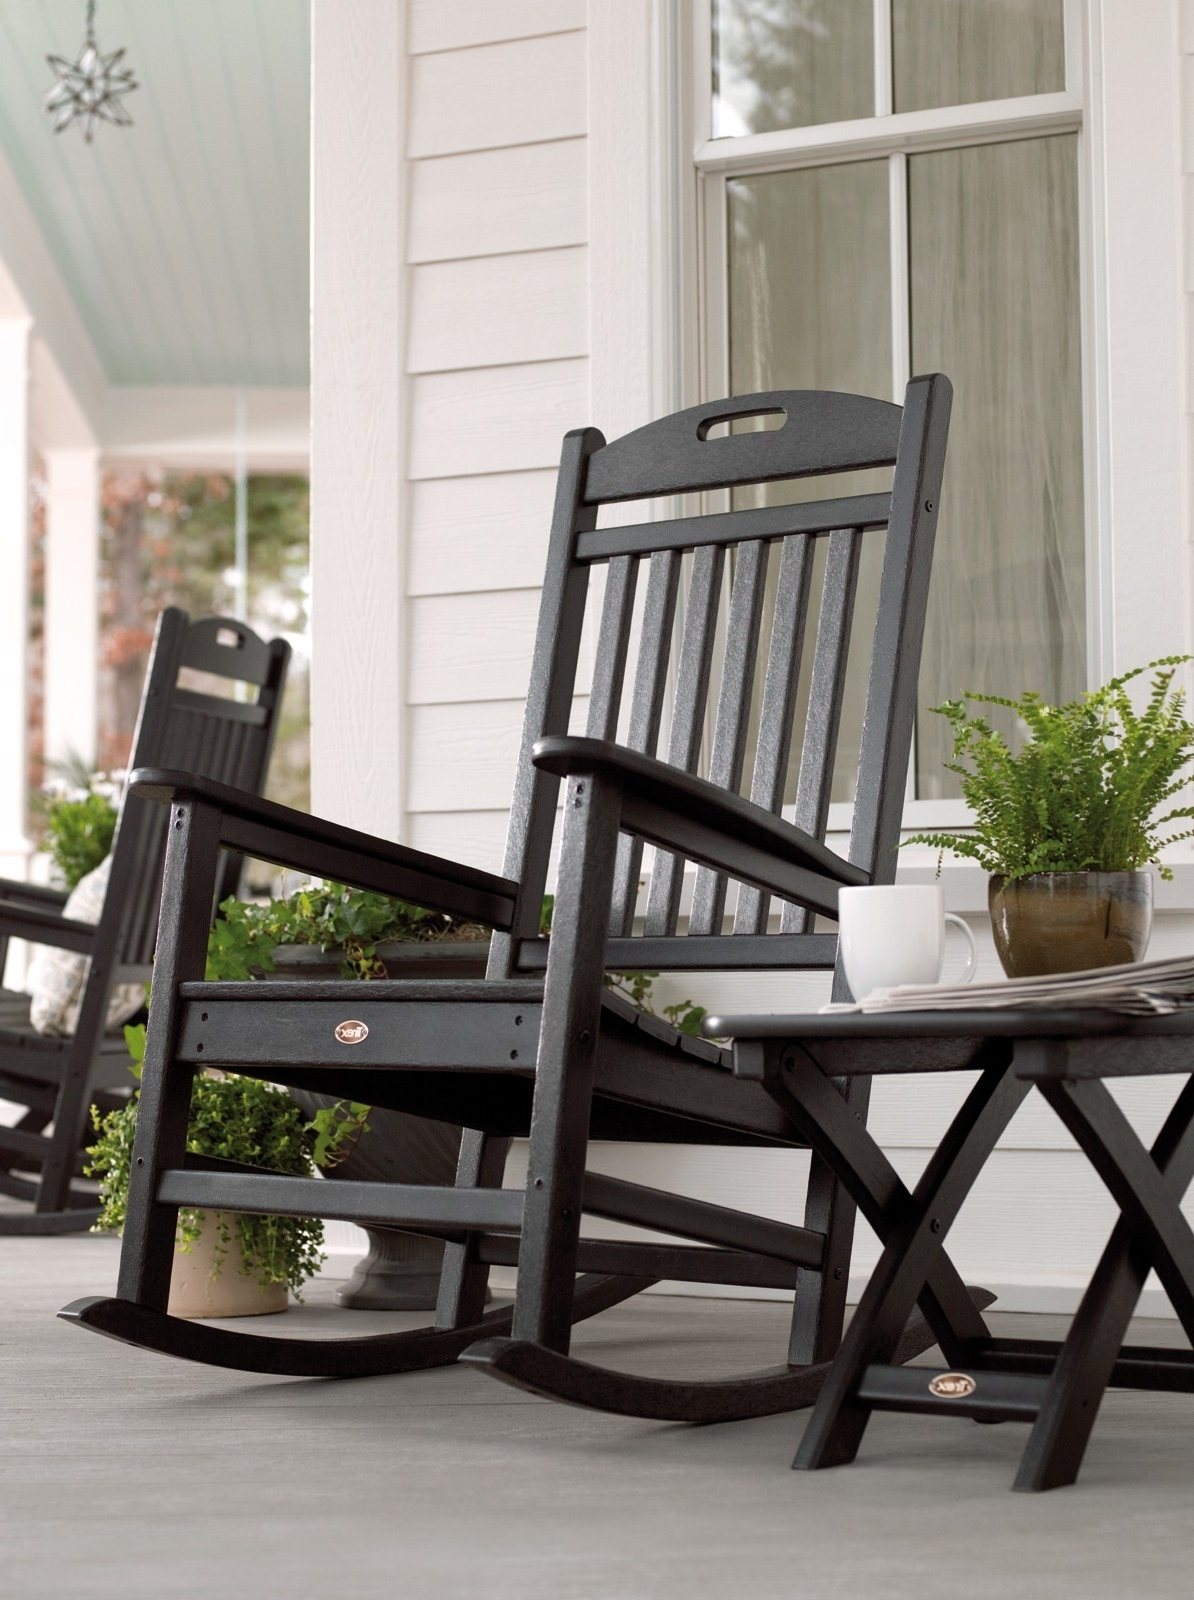 Outdoor Rocking Chairs Regarding Latest Outdoor Rocking Chair (View 6 of 15)